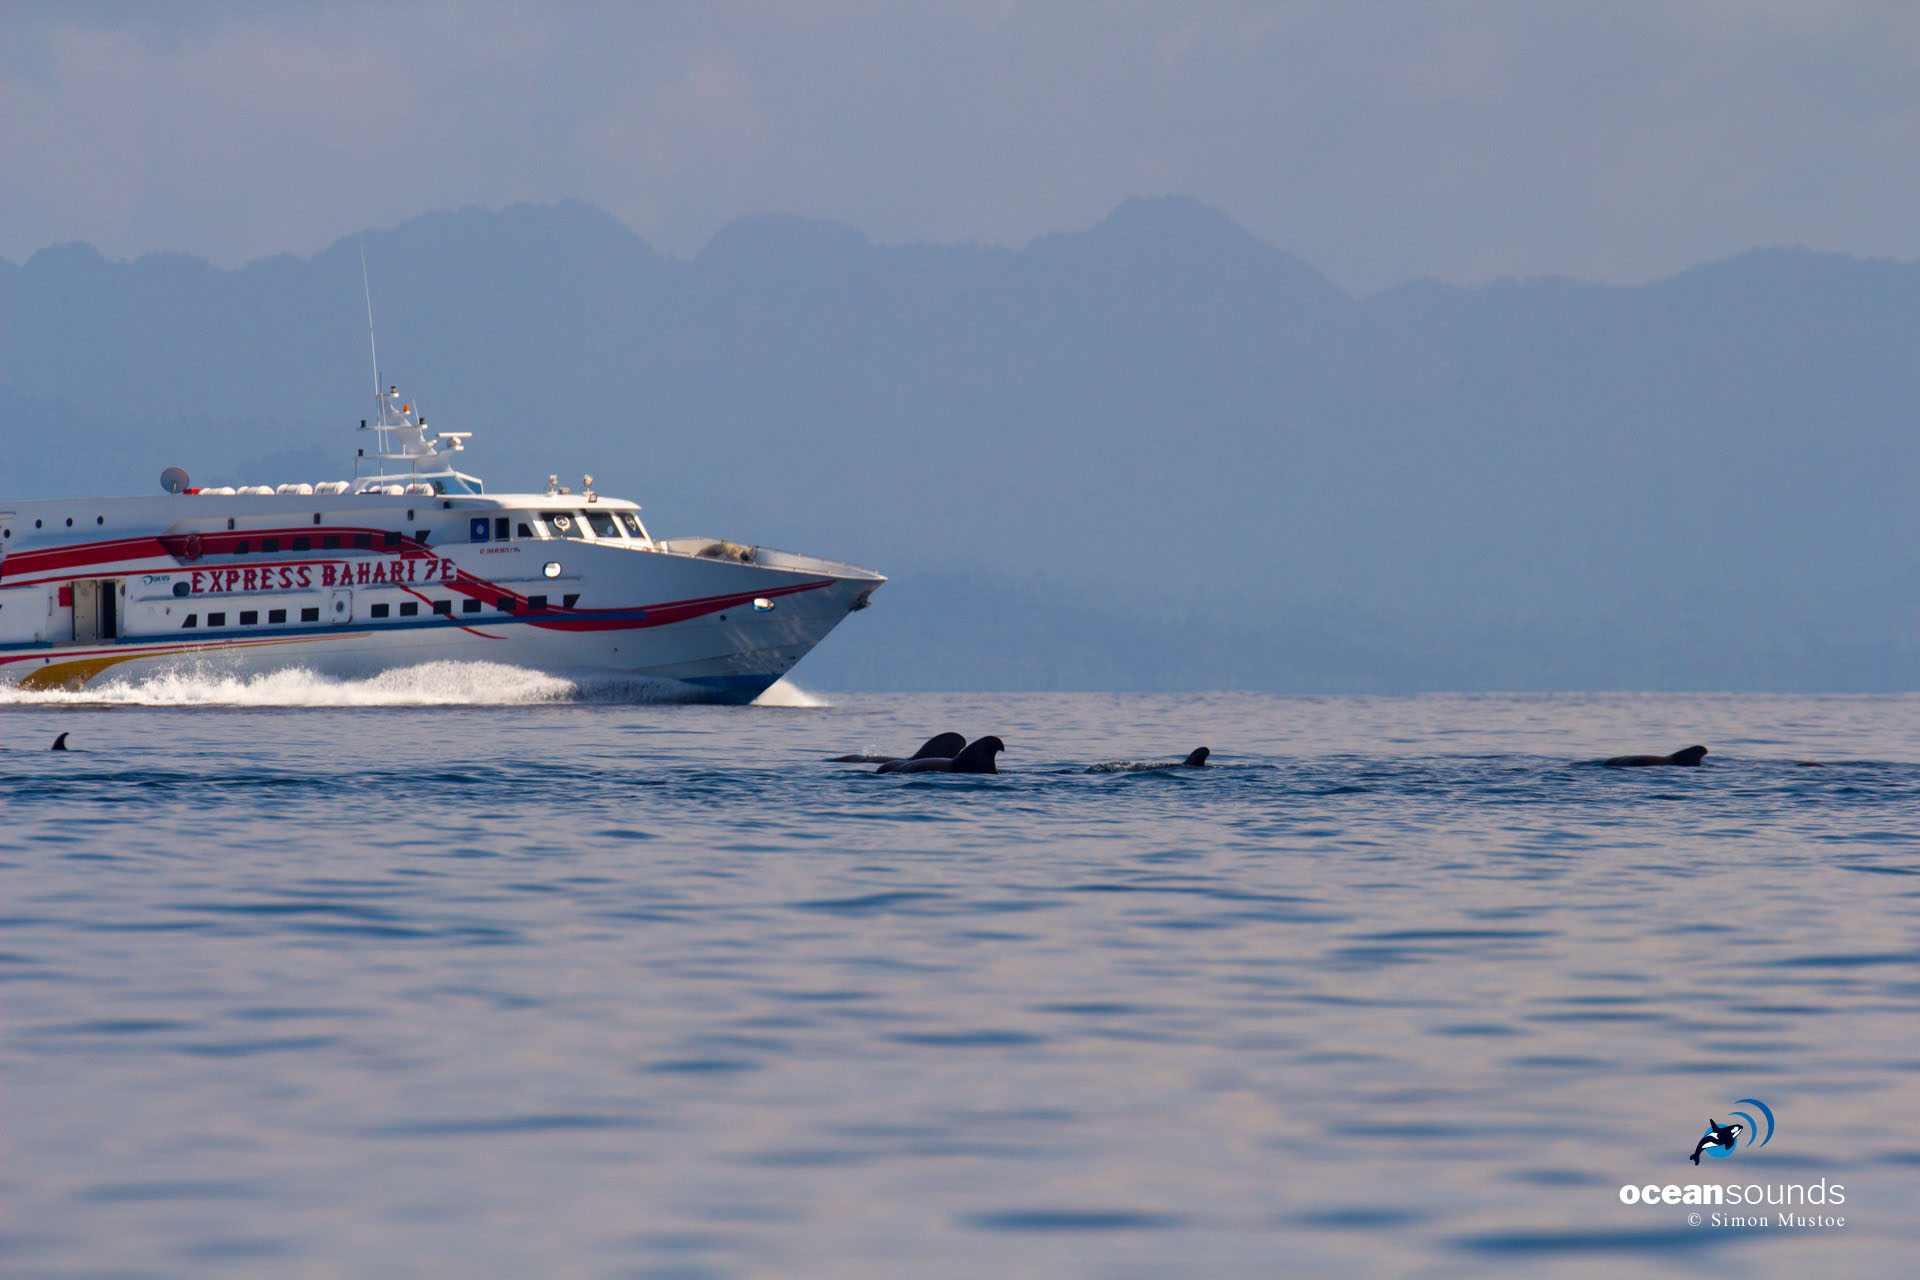 A fast ferry passes extremely close to a pod of Short-finned Pilot Whales.